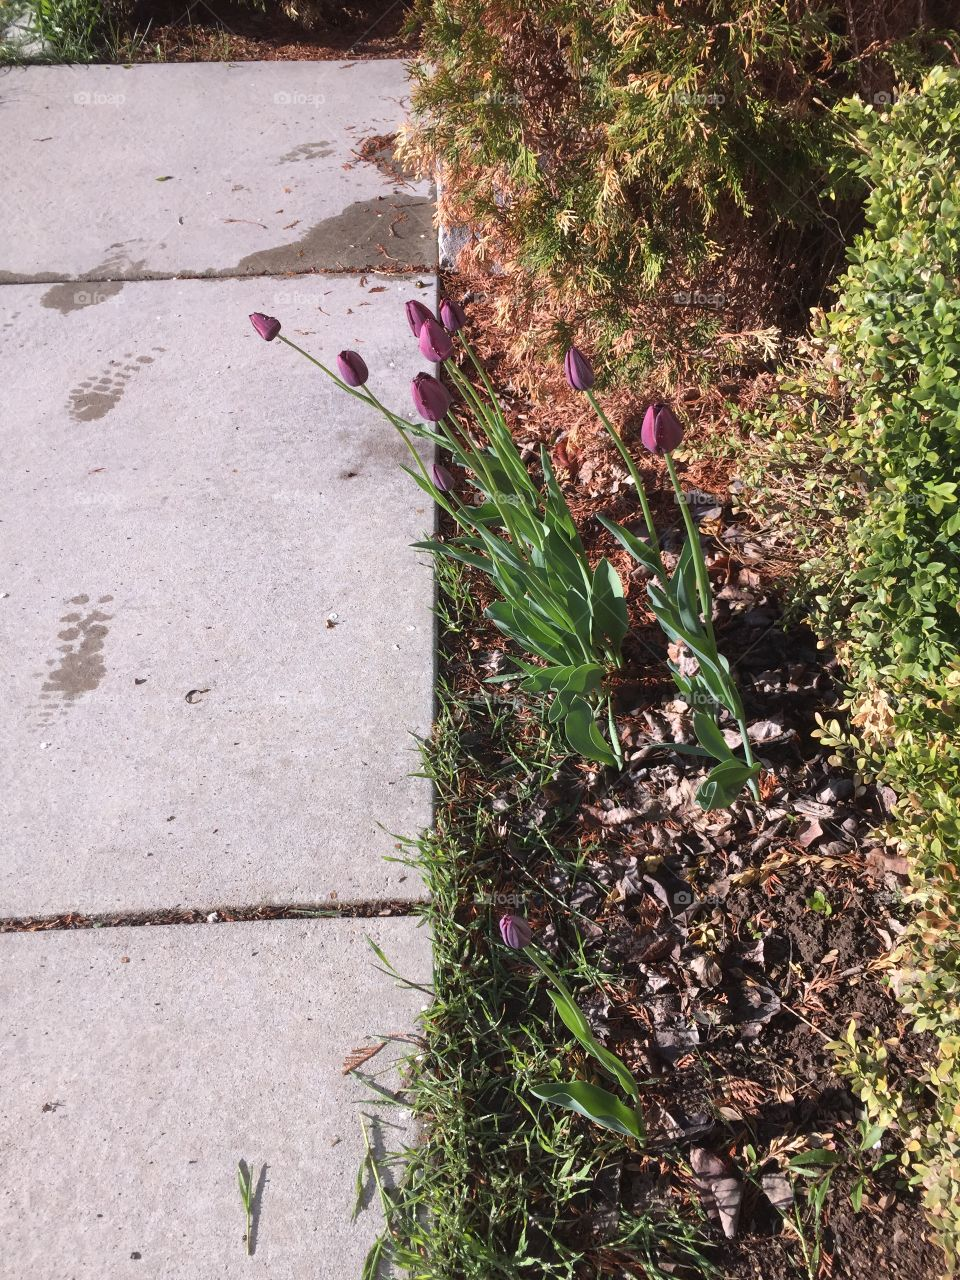 The Path of Life, The Path of Tulips